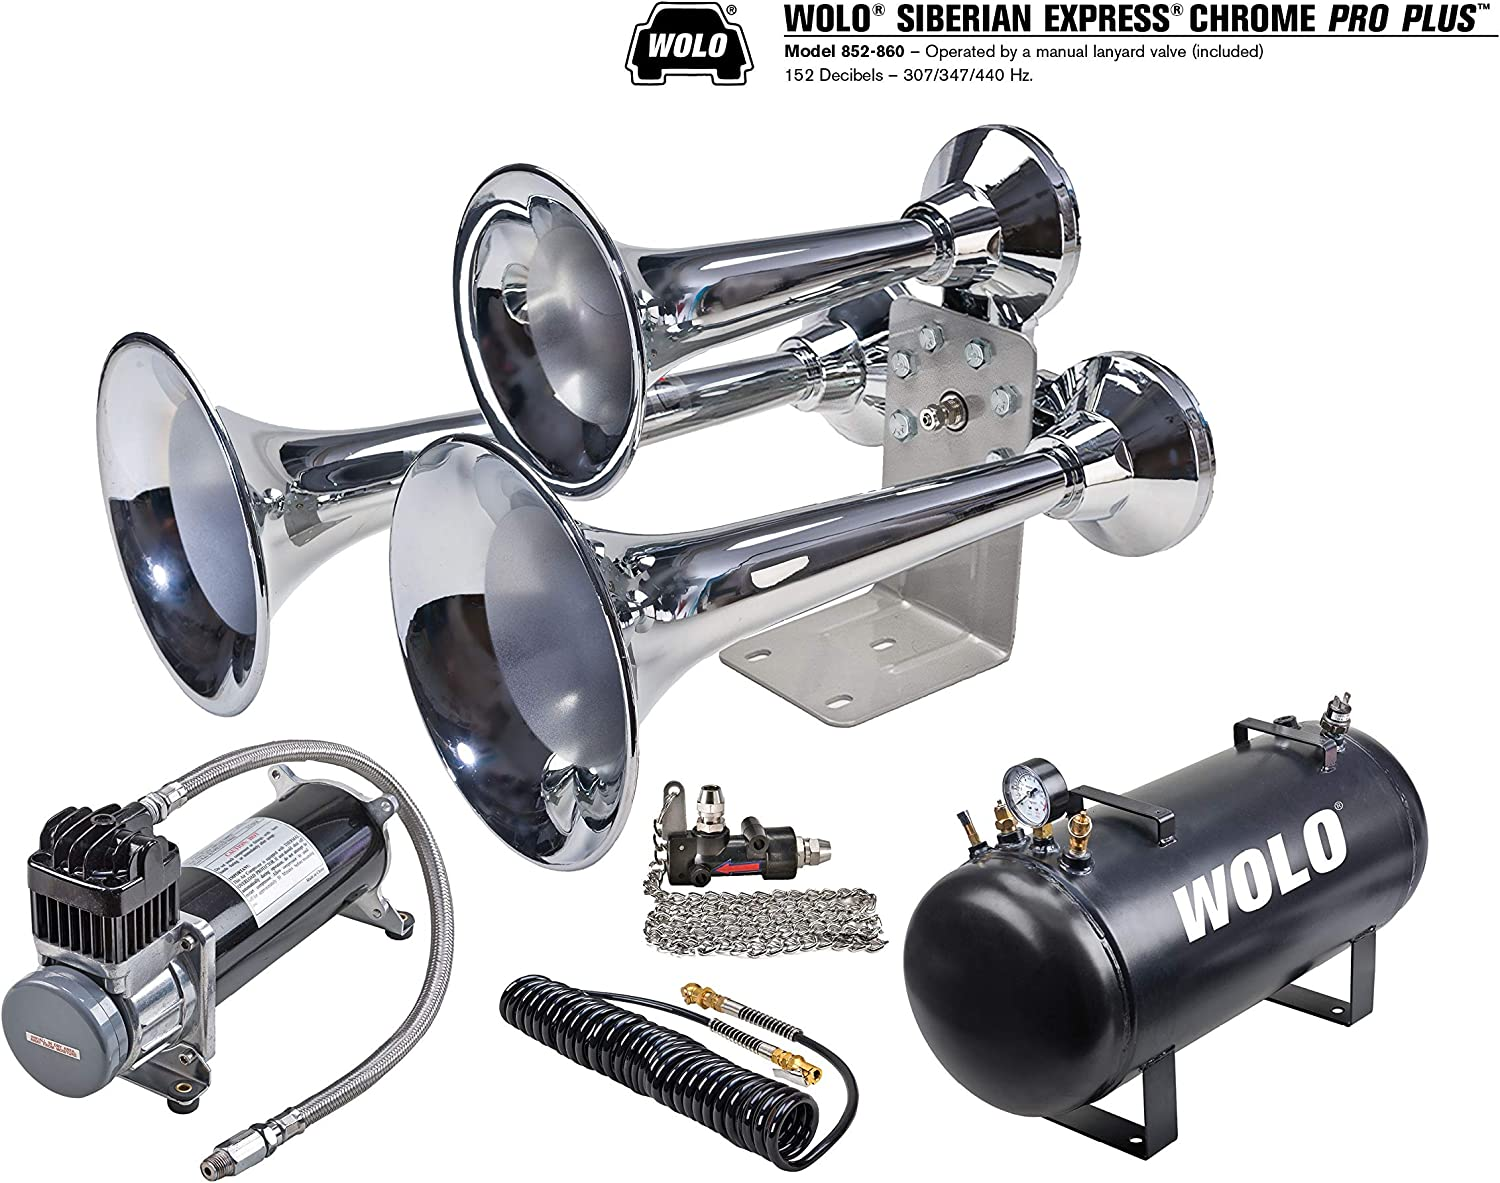 Wolo 852-860 Siberian Special Campaign Express PRO Genuine Free Shipping Extr 152 Decibels Plus 12-Volt